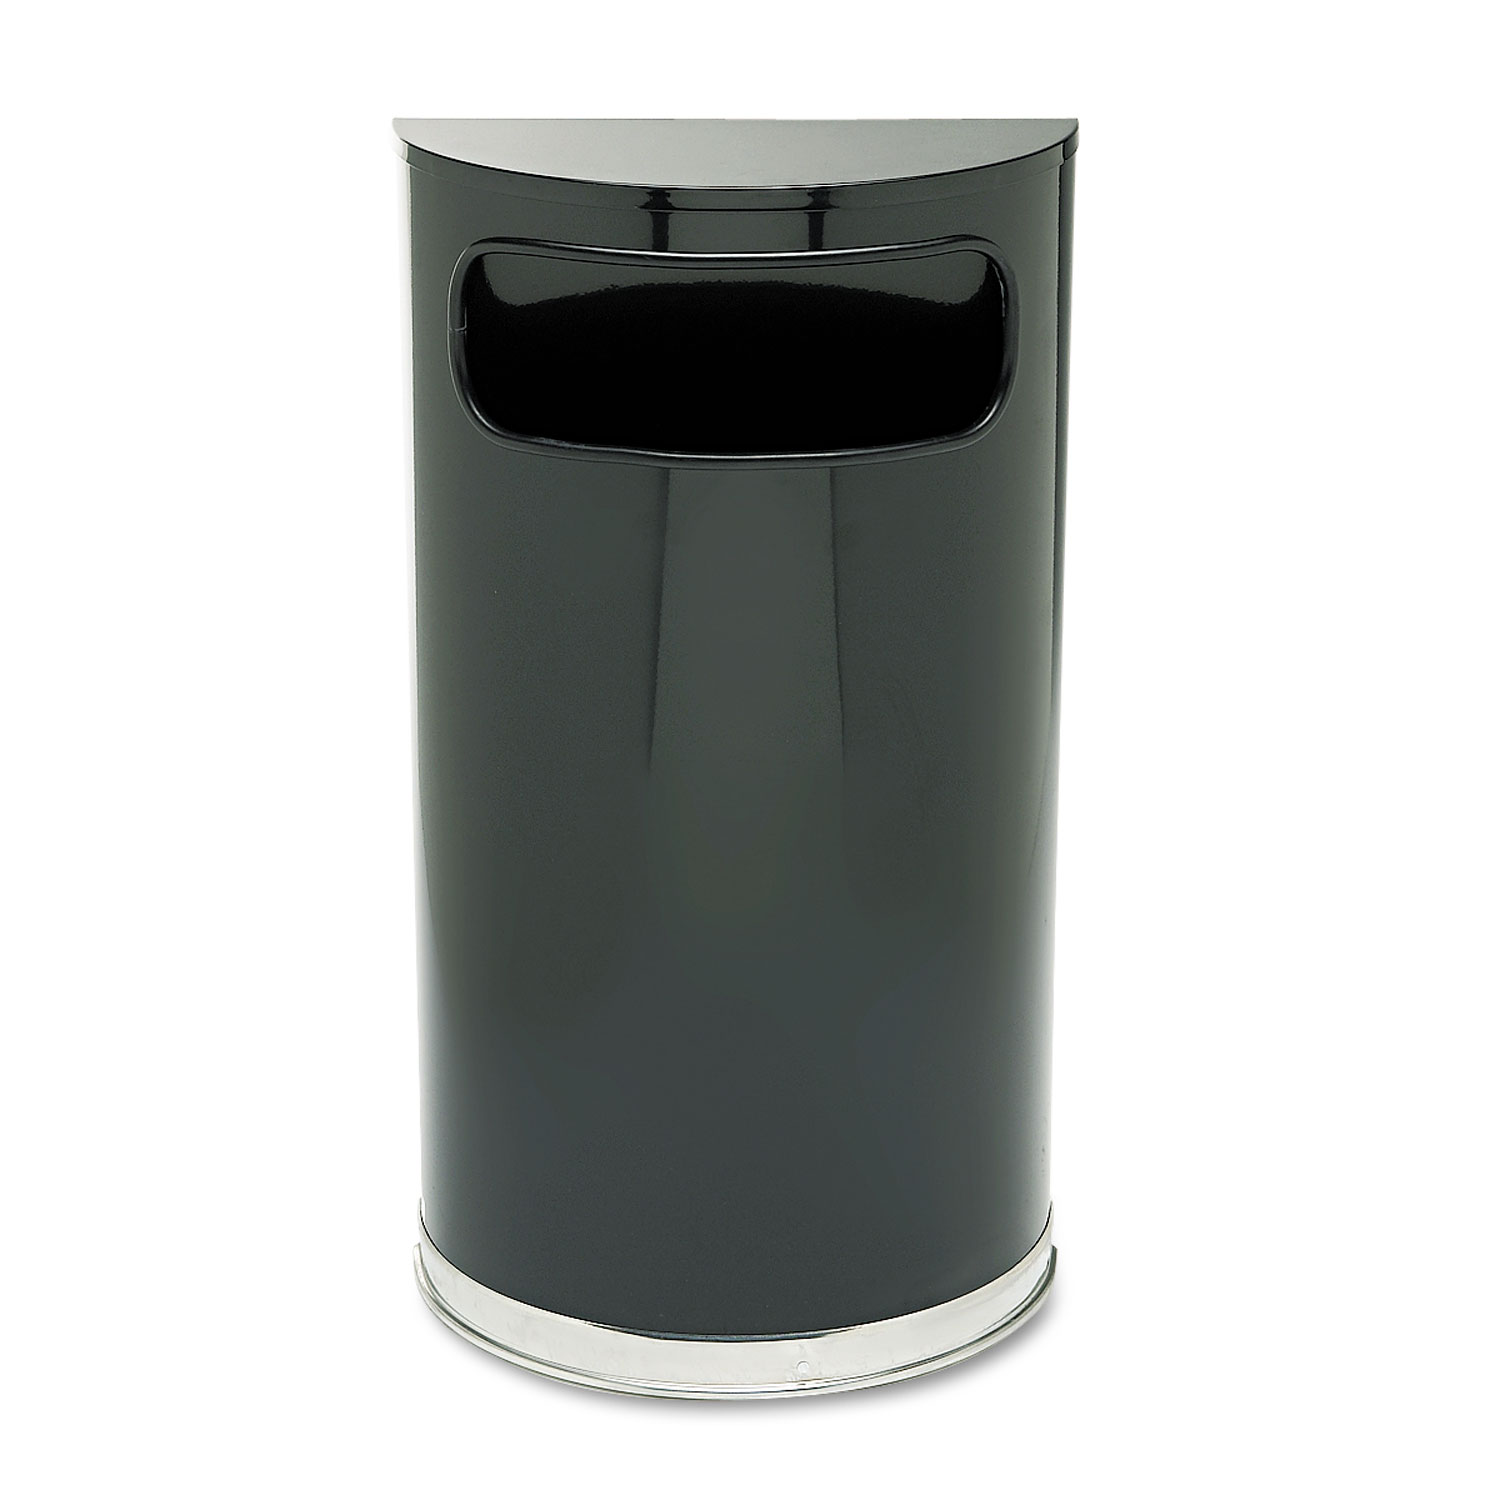 European & Metallic Series Receptacle, Half-Round, 9gal, Black/Chrome